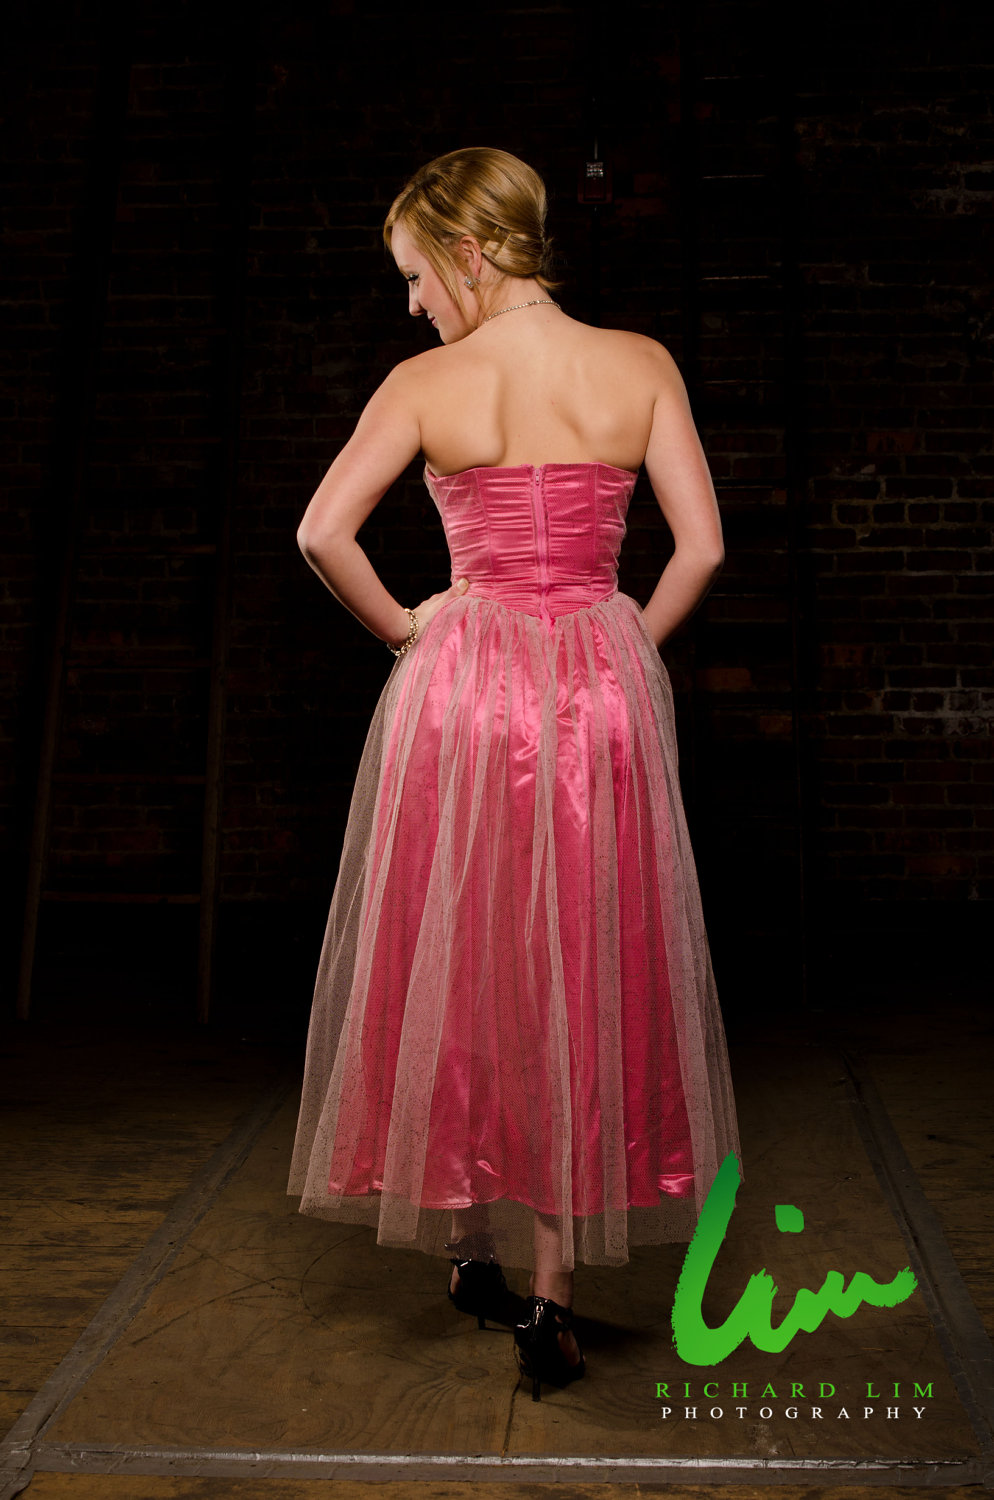 Vintage Prom Dresses Etsy - Viewing Gallery